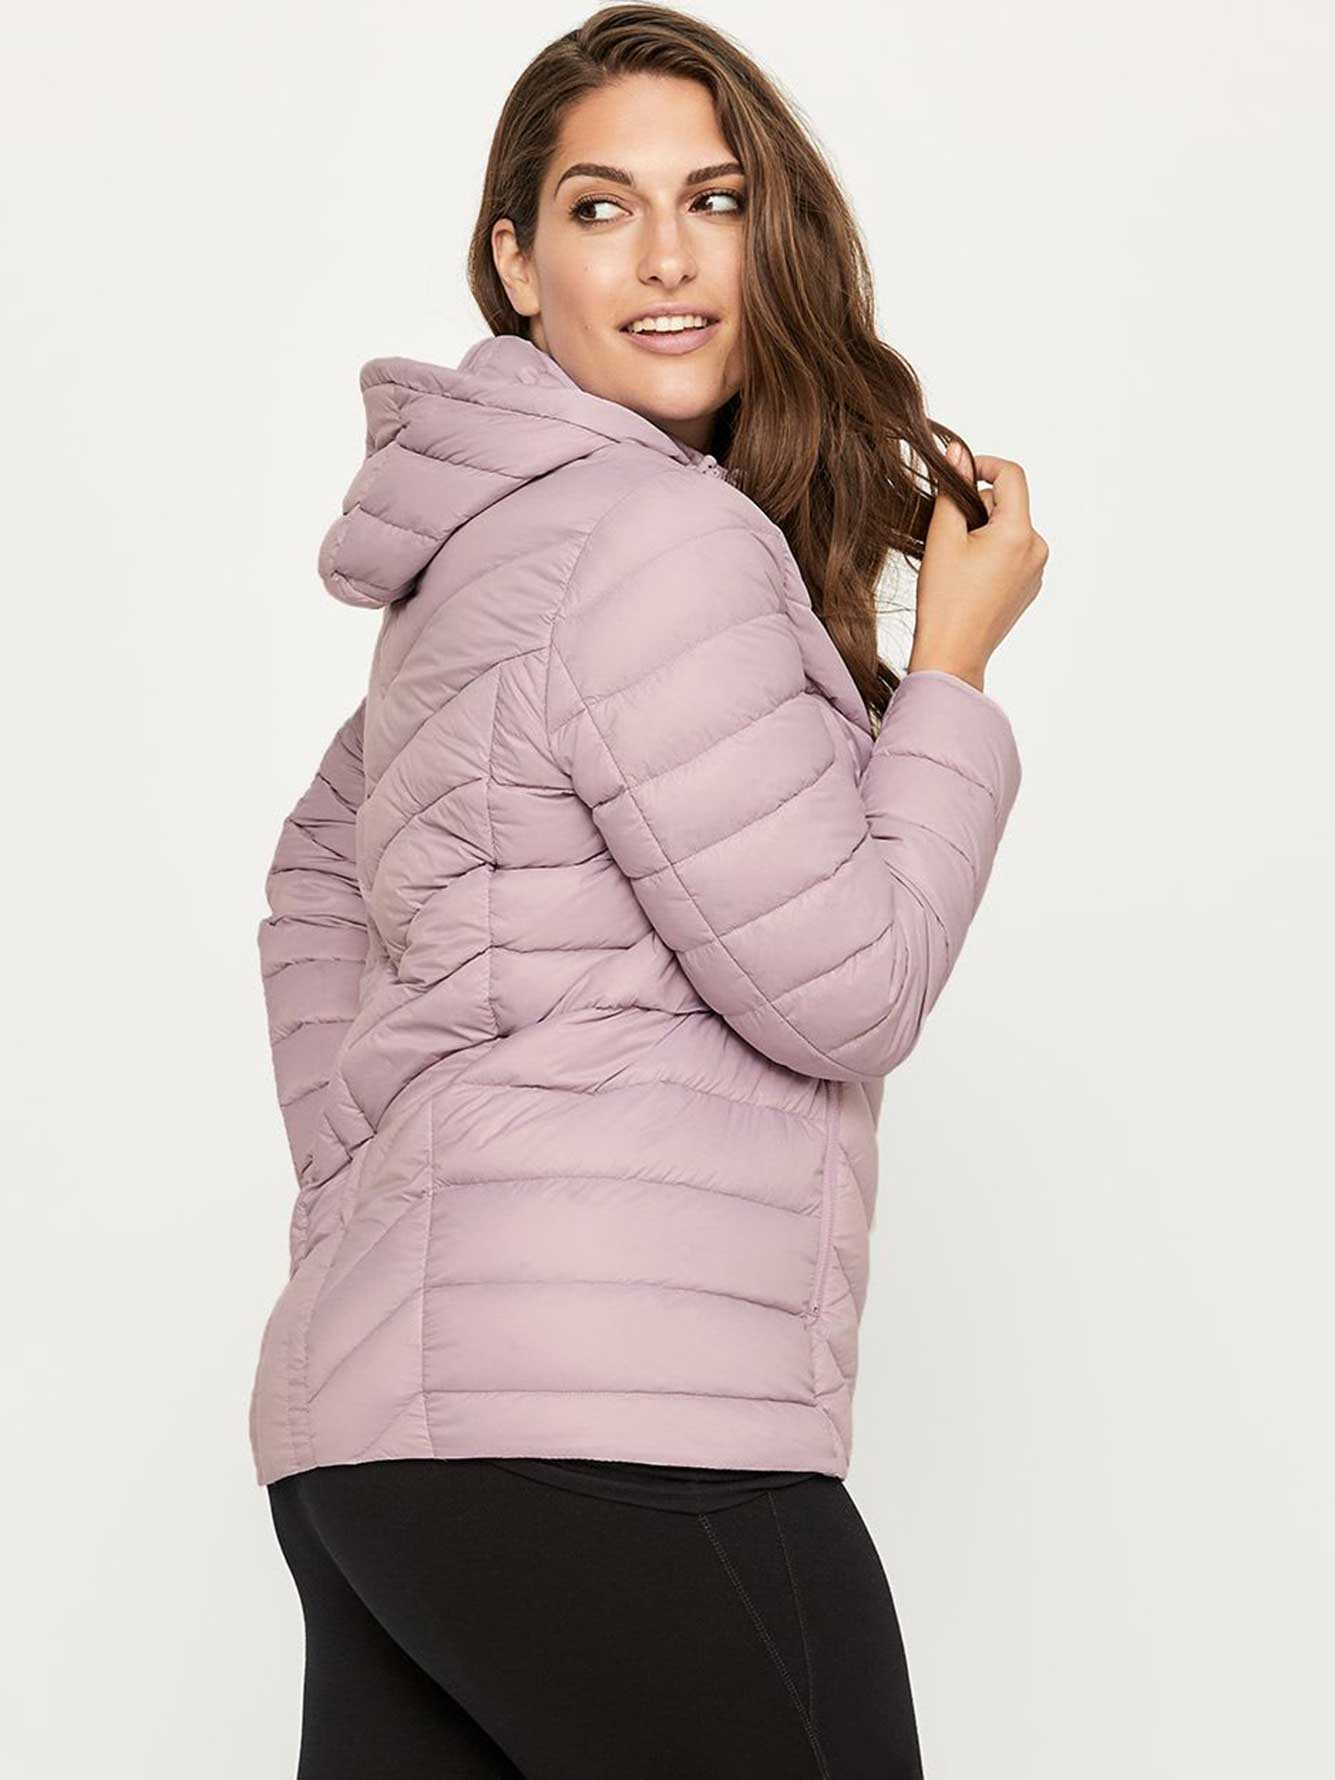 95c8f4004d1ae Plus Size Packable Hooded Jacket - ActiveZone